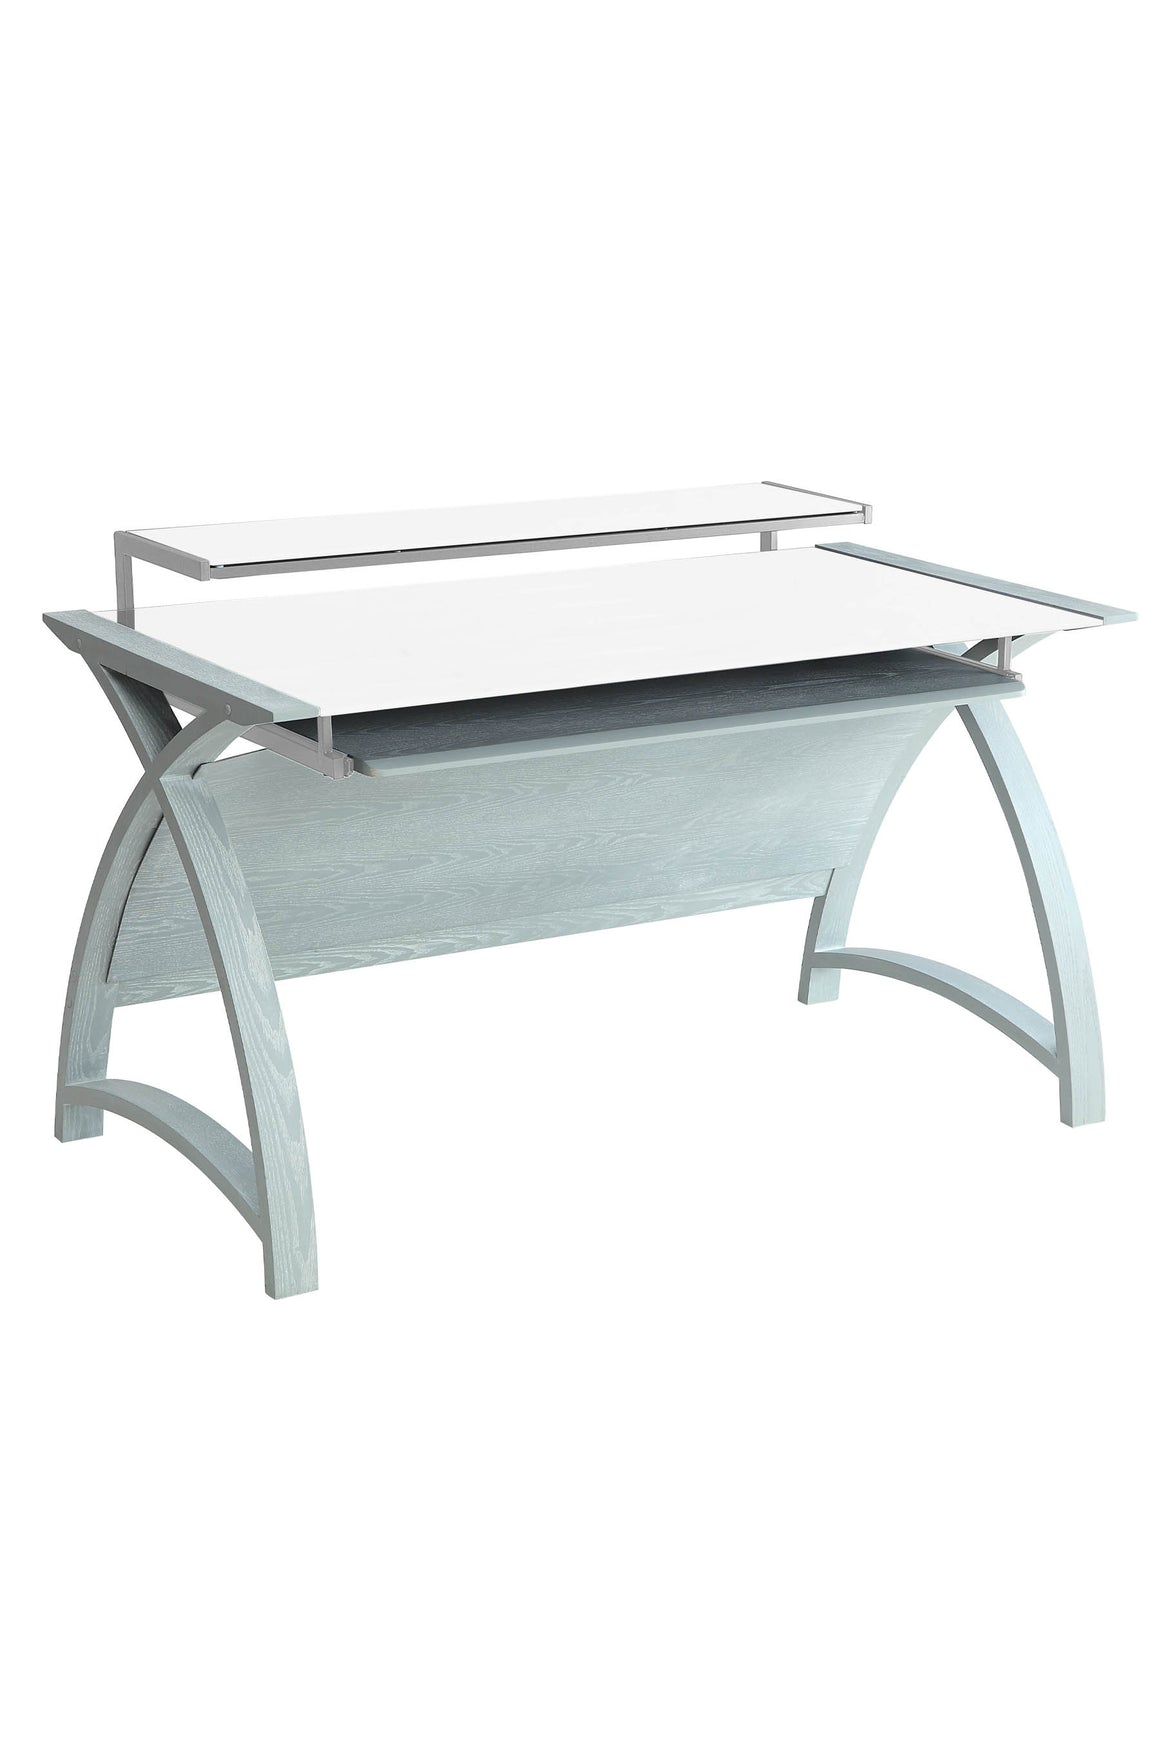 PC201 Helsinki 1300 Desk (Grey) - PRE-ORDER FOR DELIVERY W/C 14/09/20